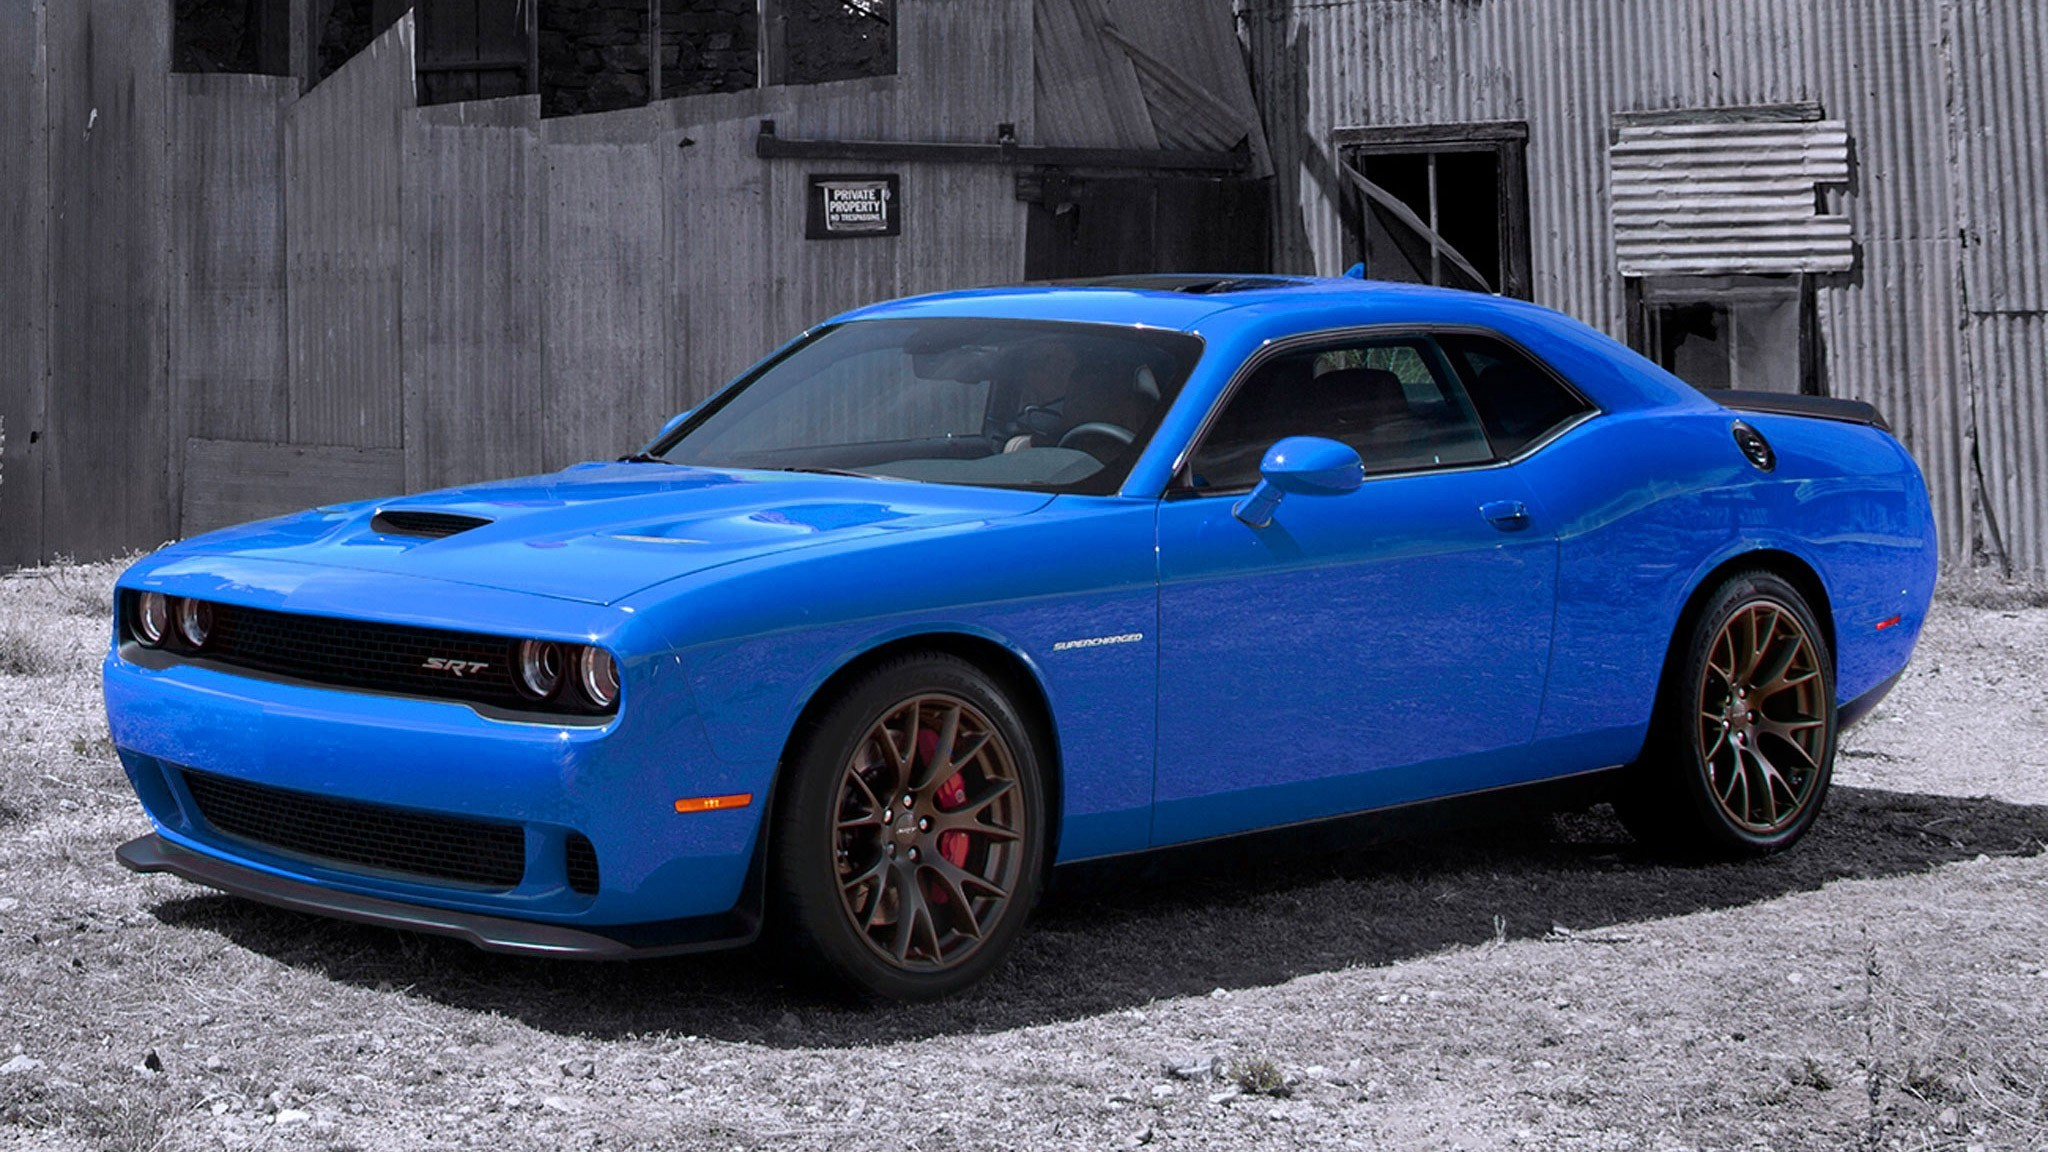 Res: 2048x1152, Amazing Looking Dodge Challenger Hellcats Wallpaper B4 Blue